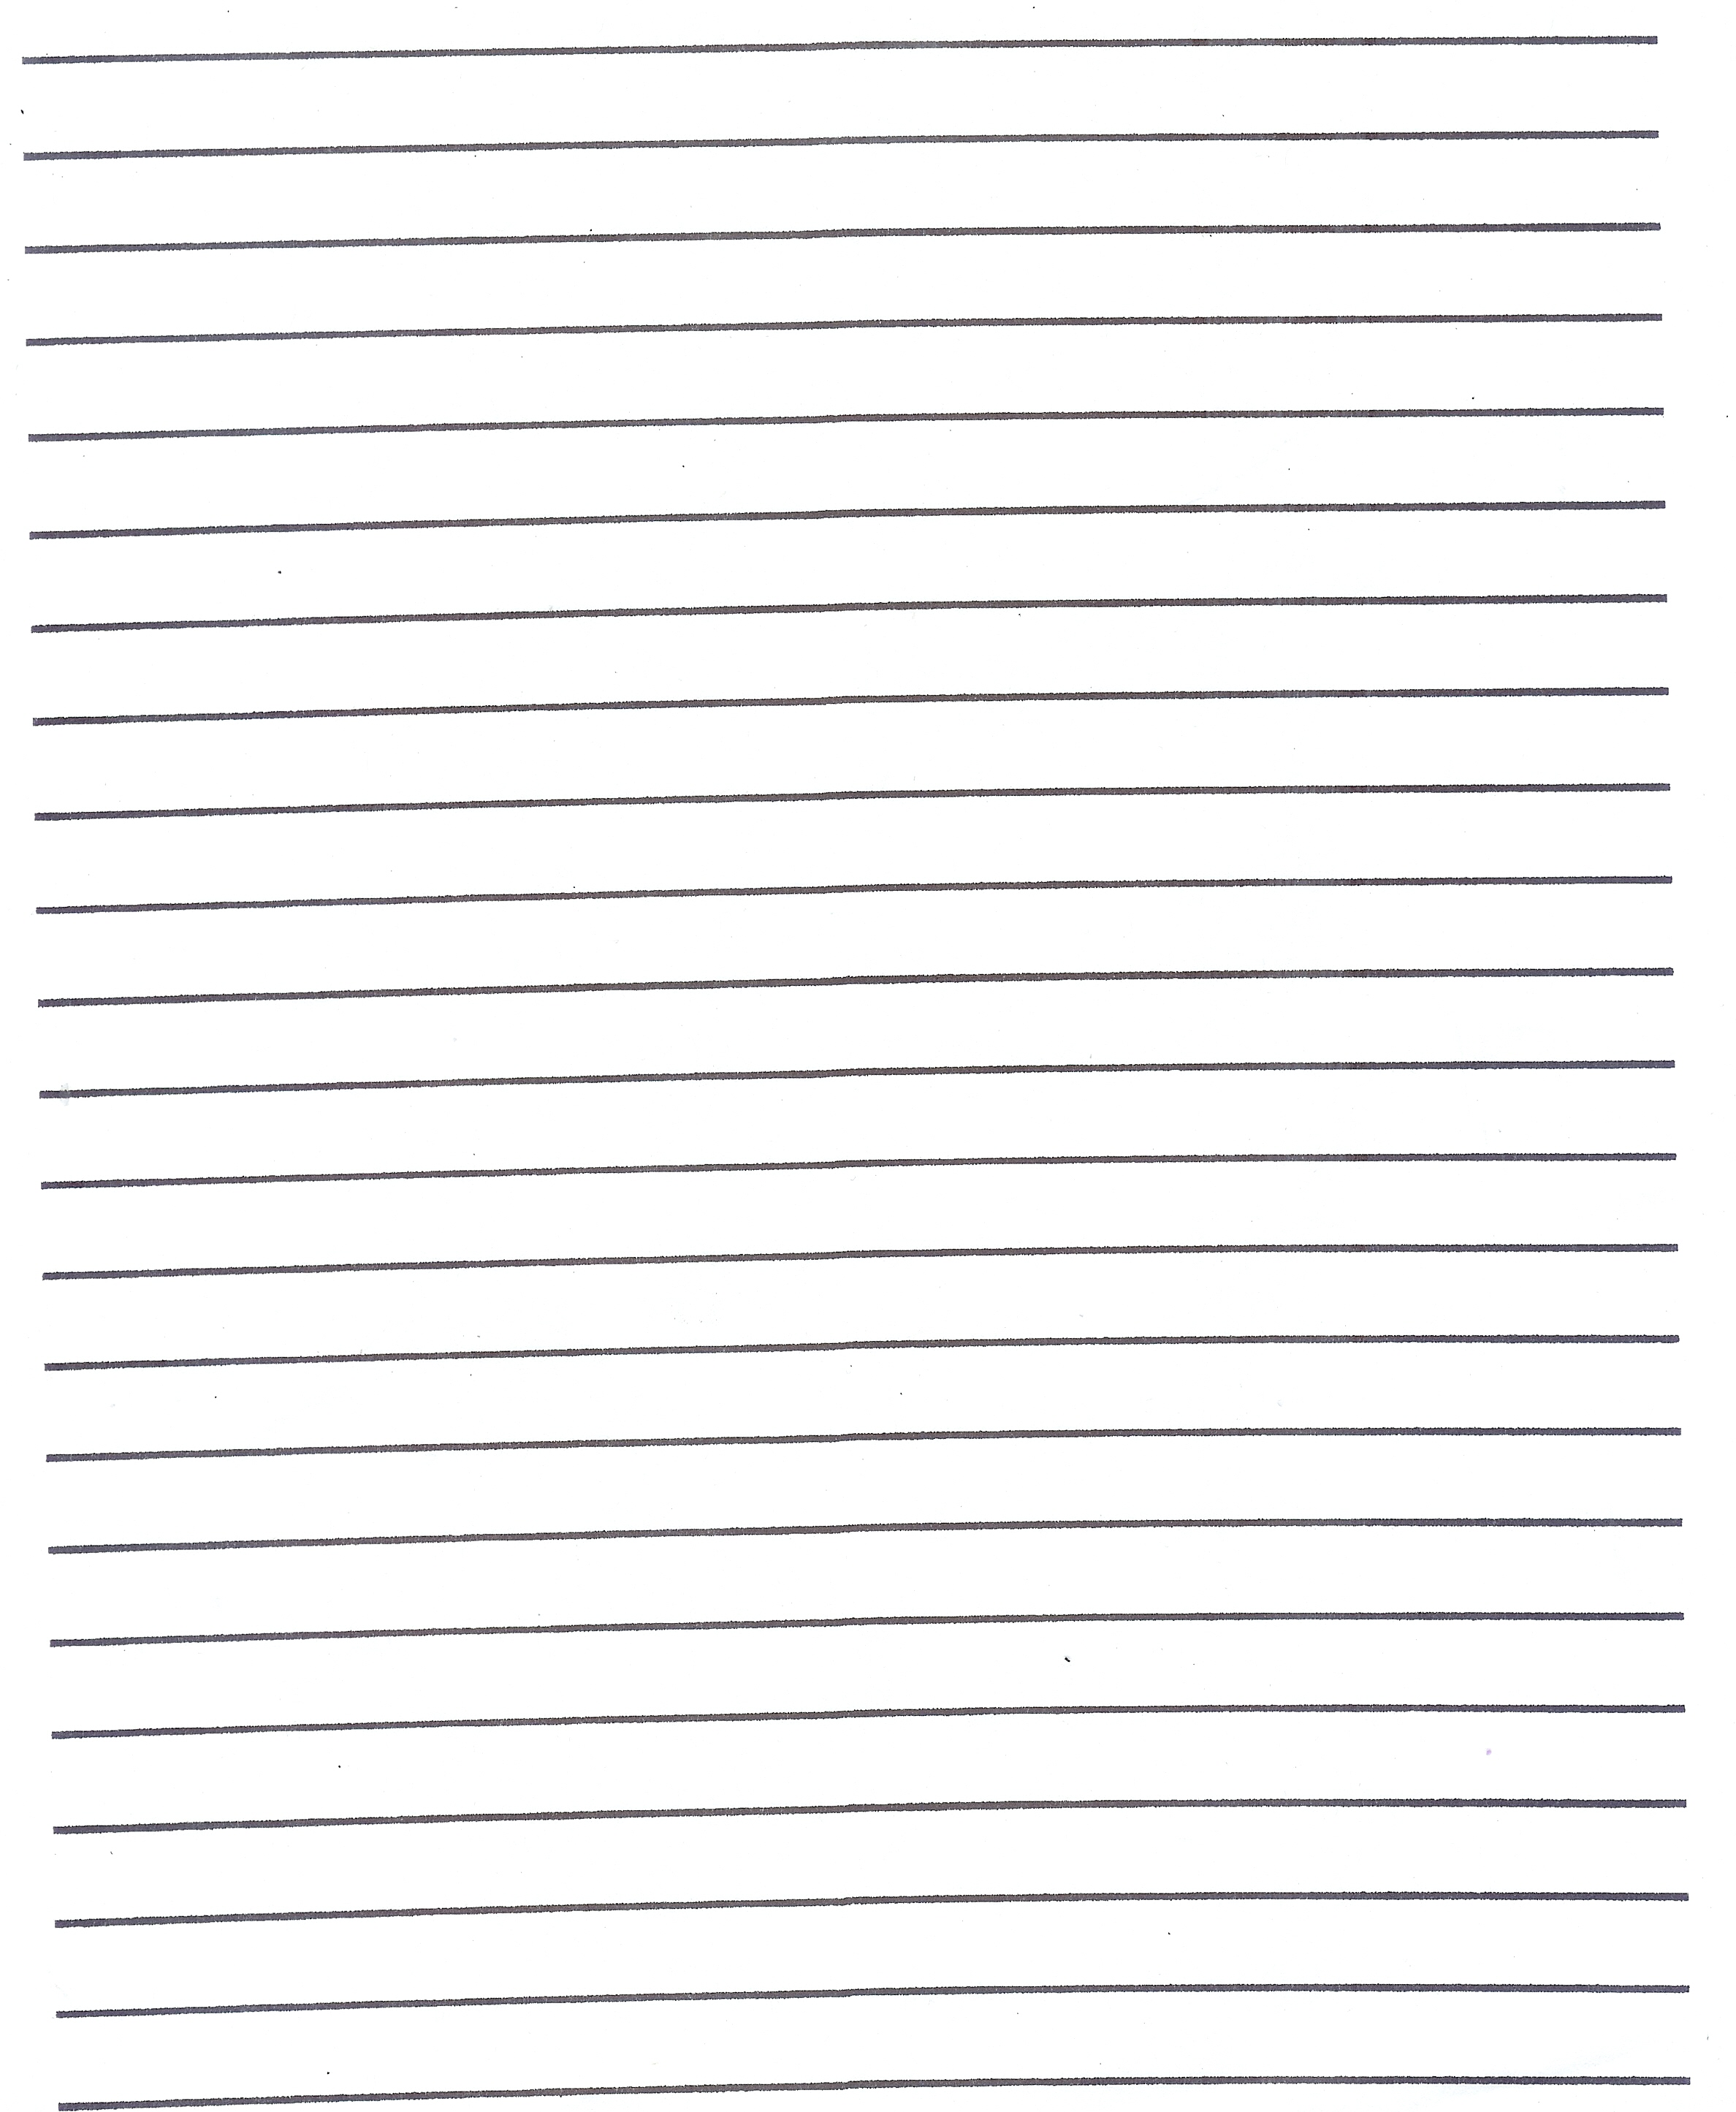 Blank Writing Paper Online College Paper Example